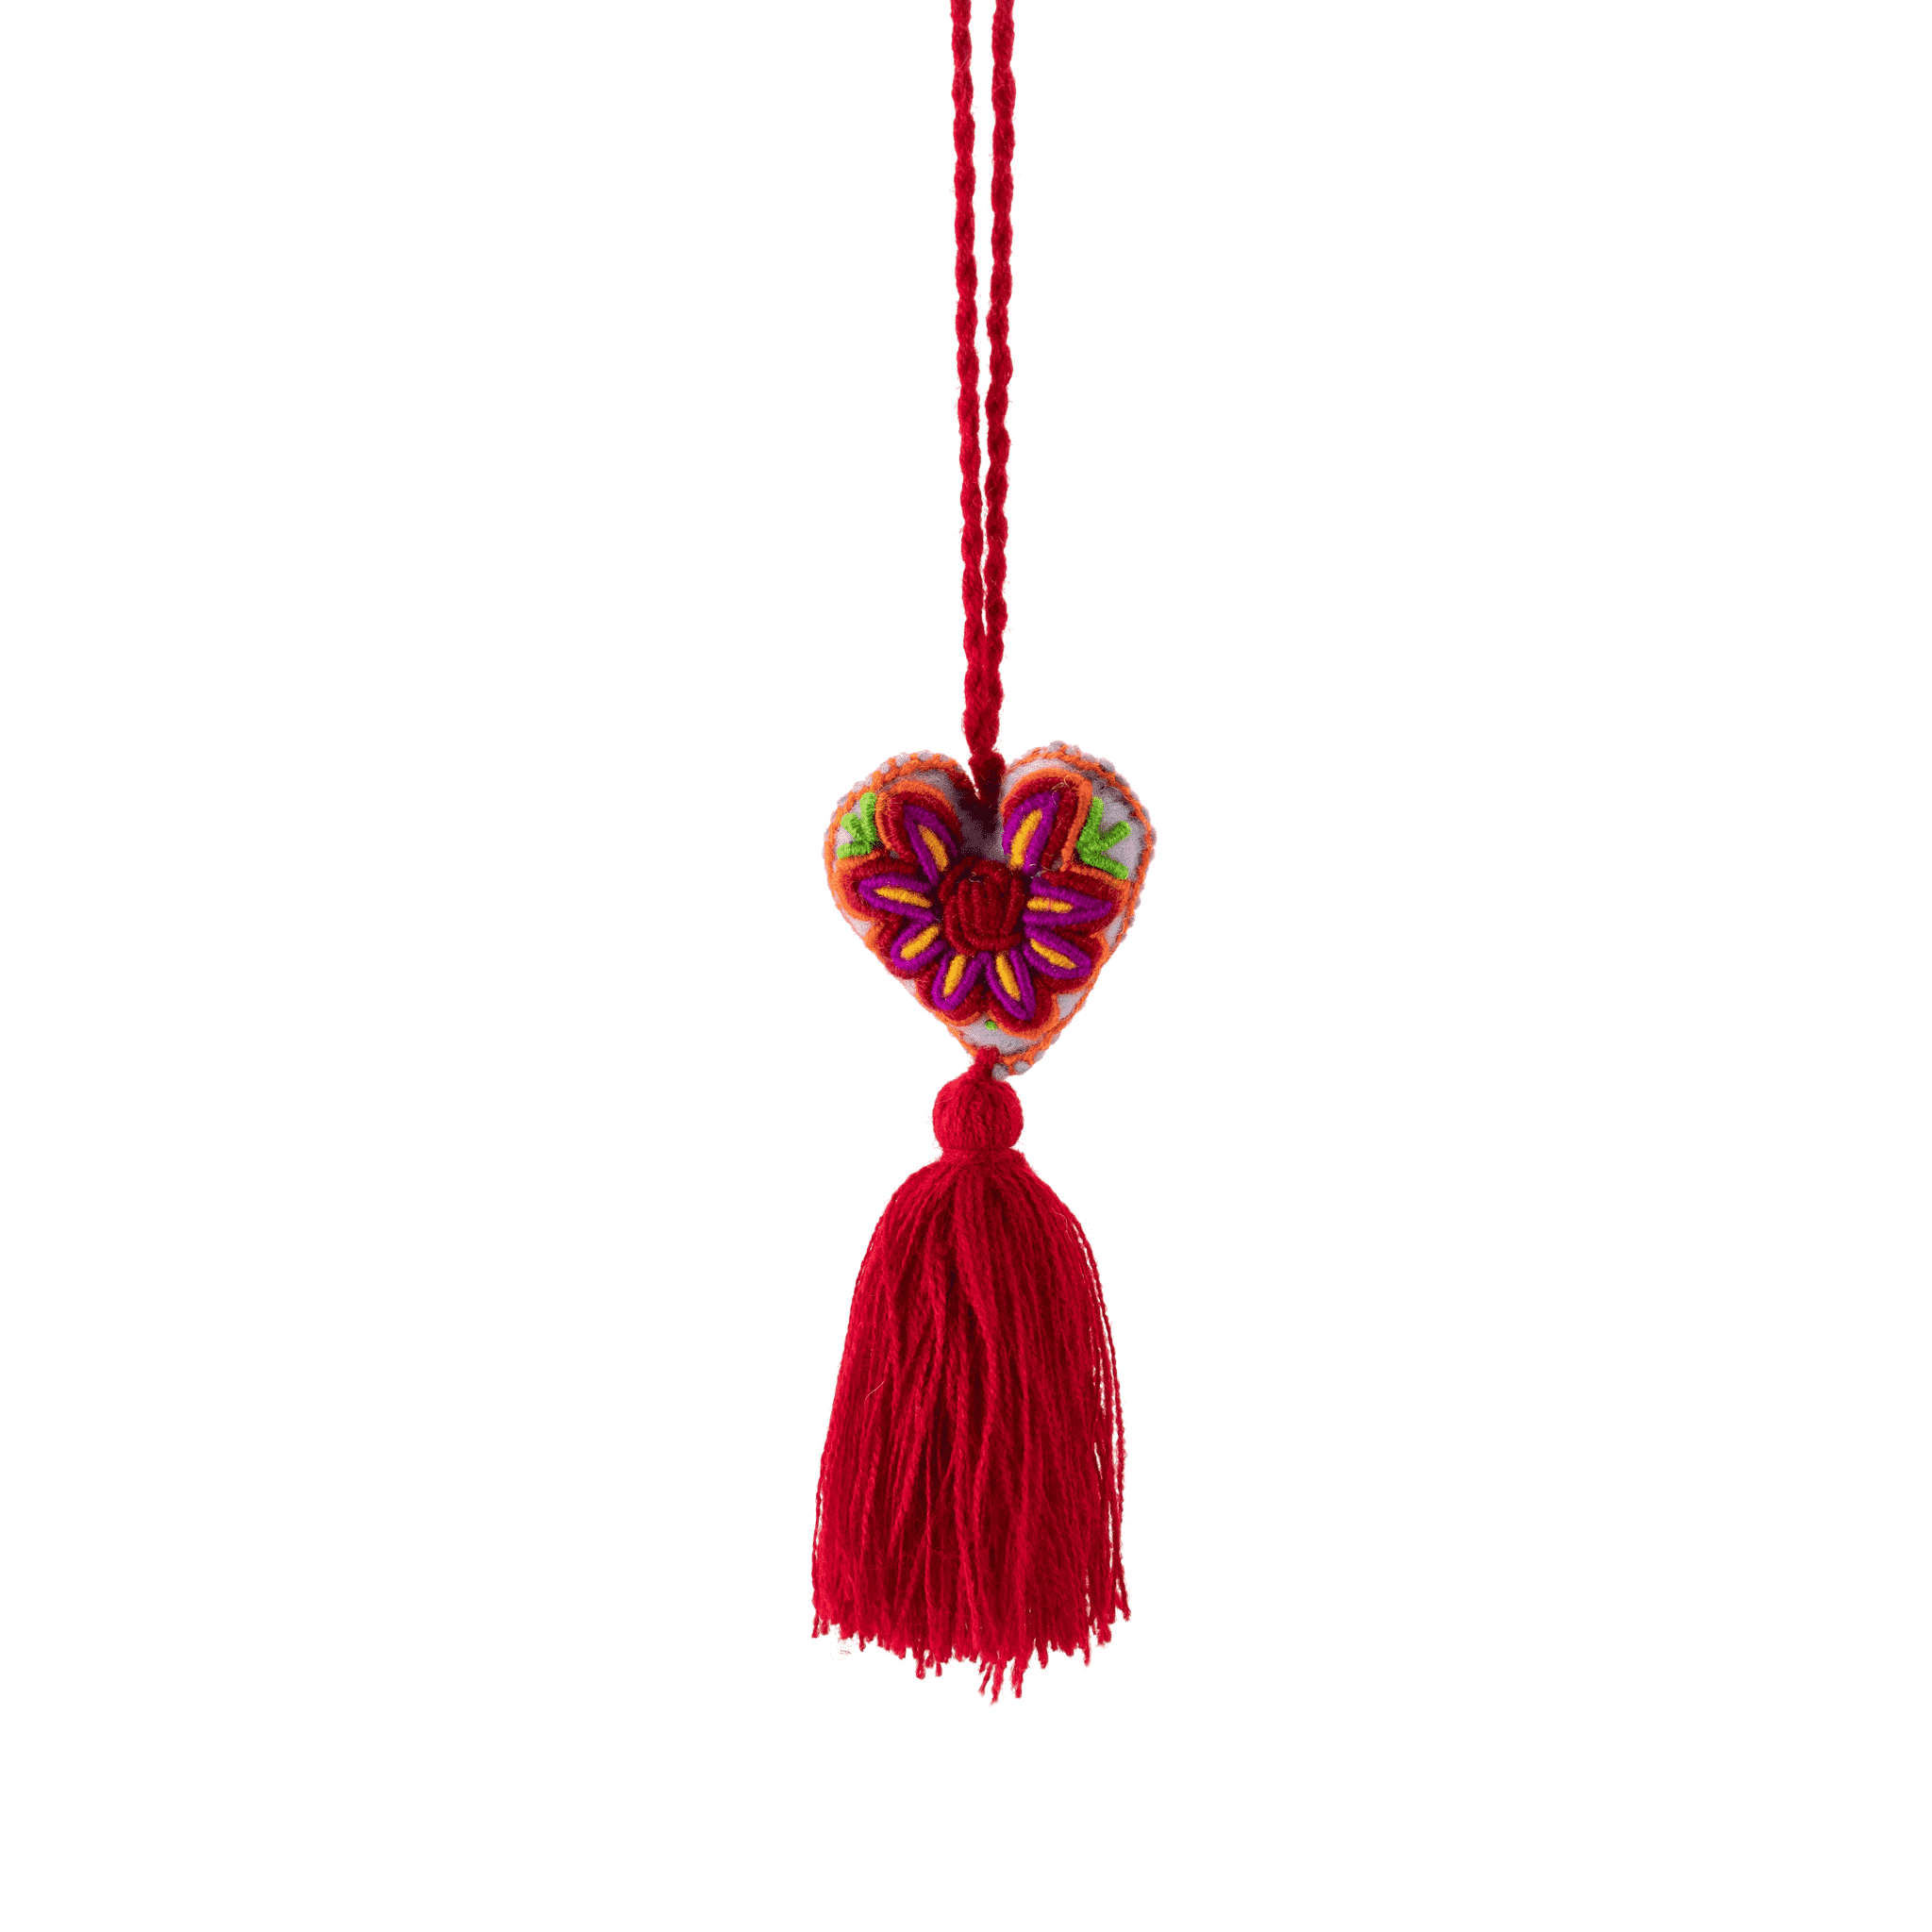 Shop the Heart Pom Collection